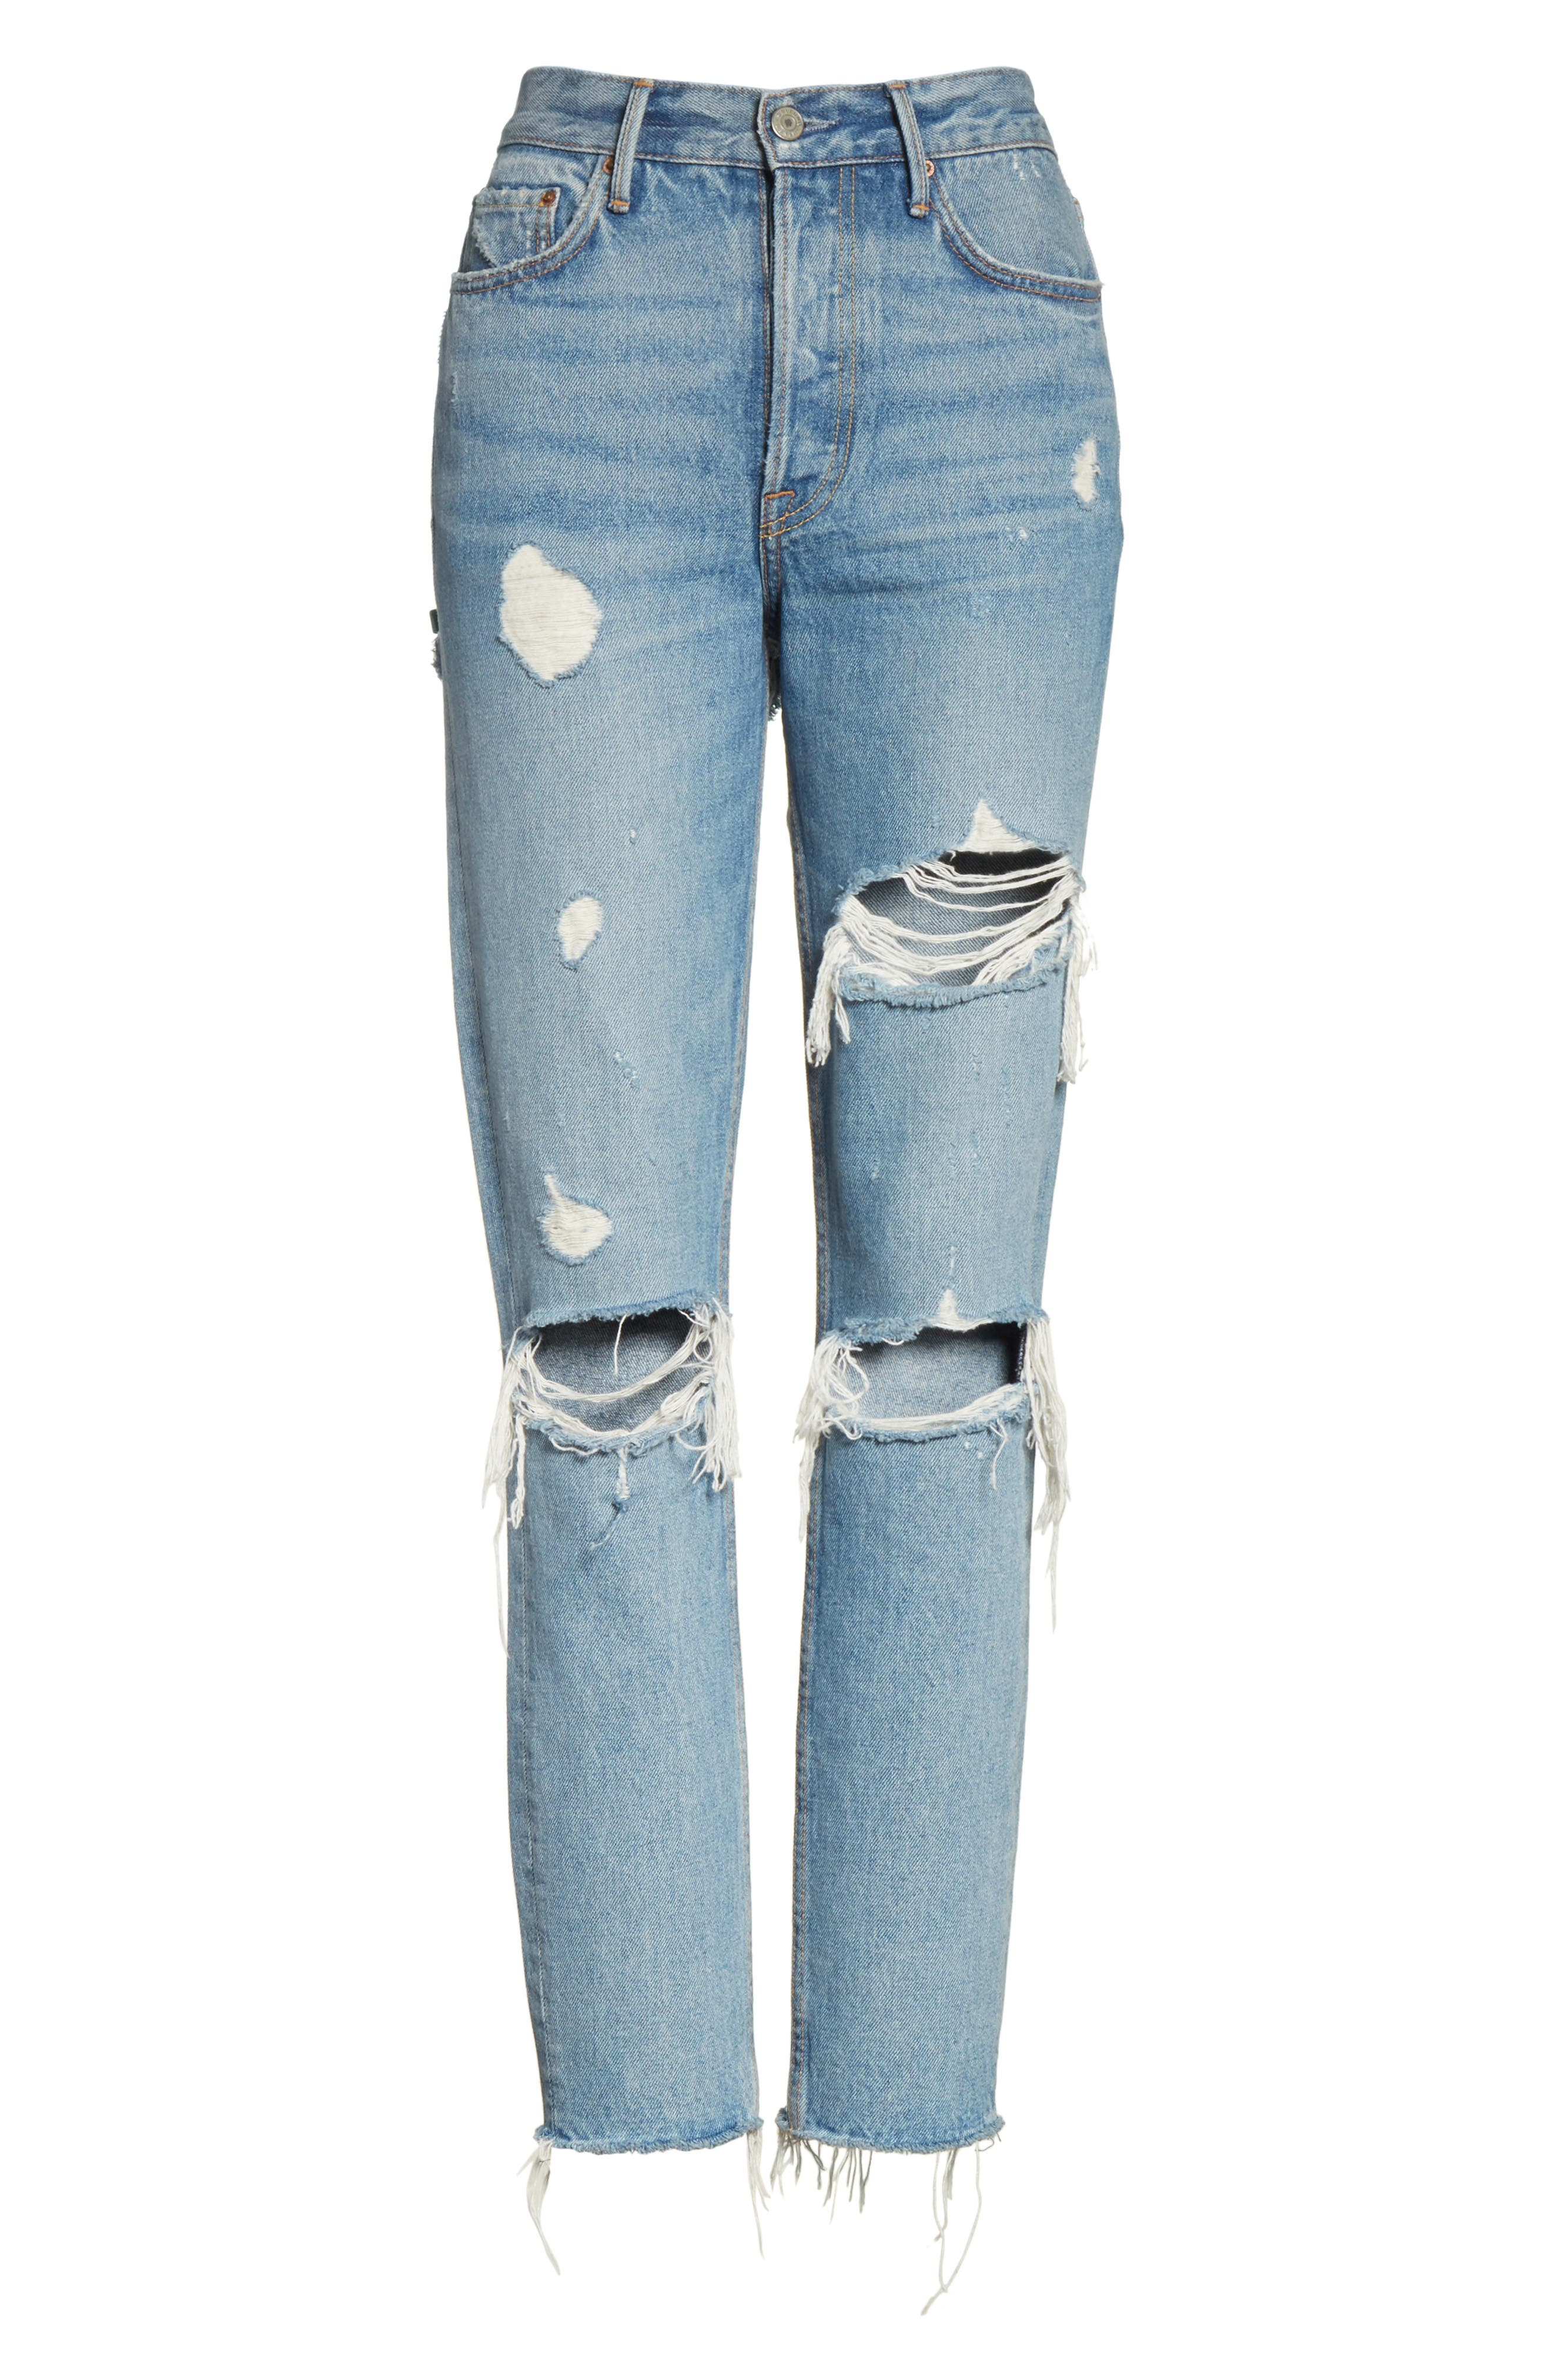 Karolina Ripped Rigid High Waist Skinny Jeans,                             Alternate thumbnail 6, color,                             A LITTLE MORE LOVE